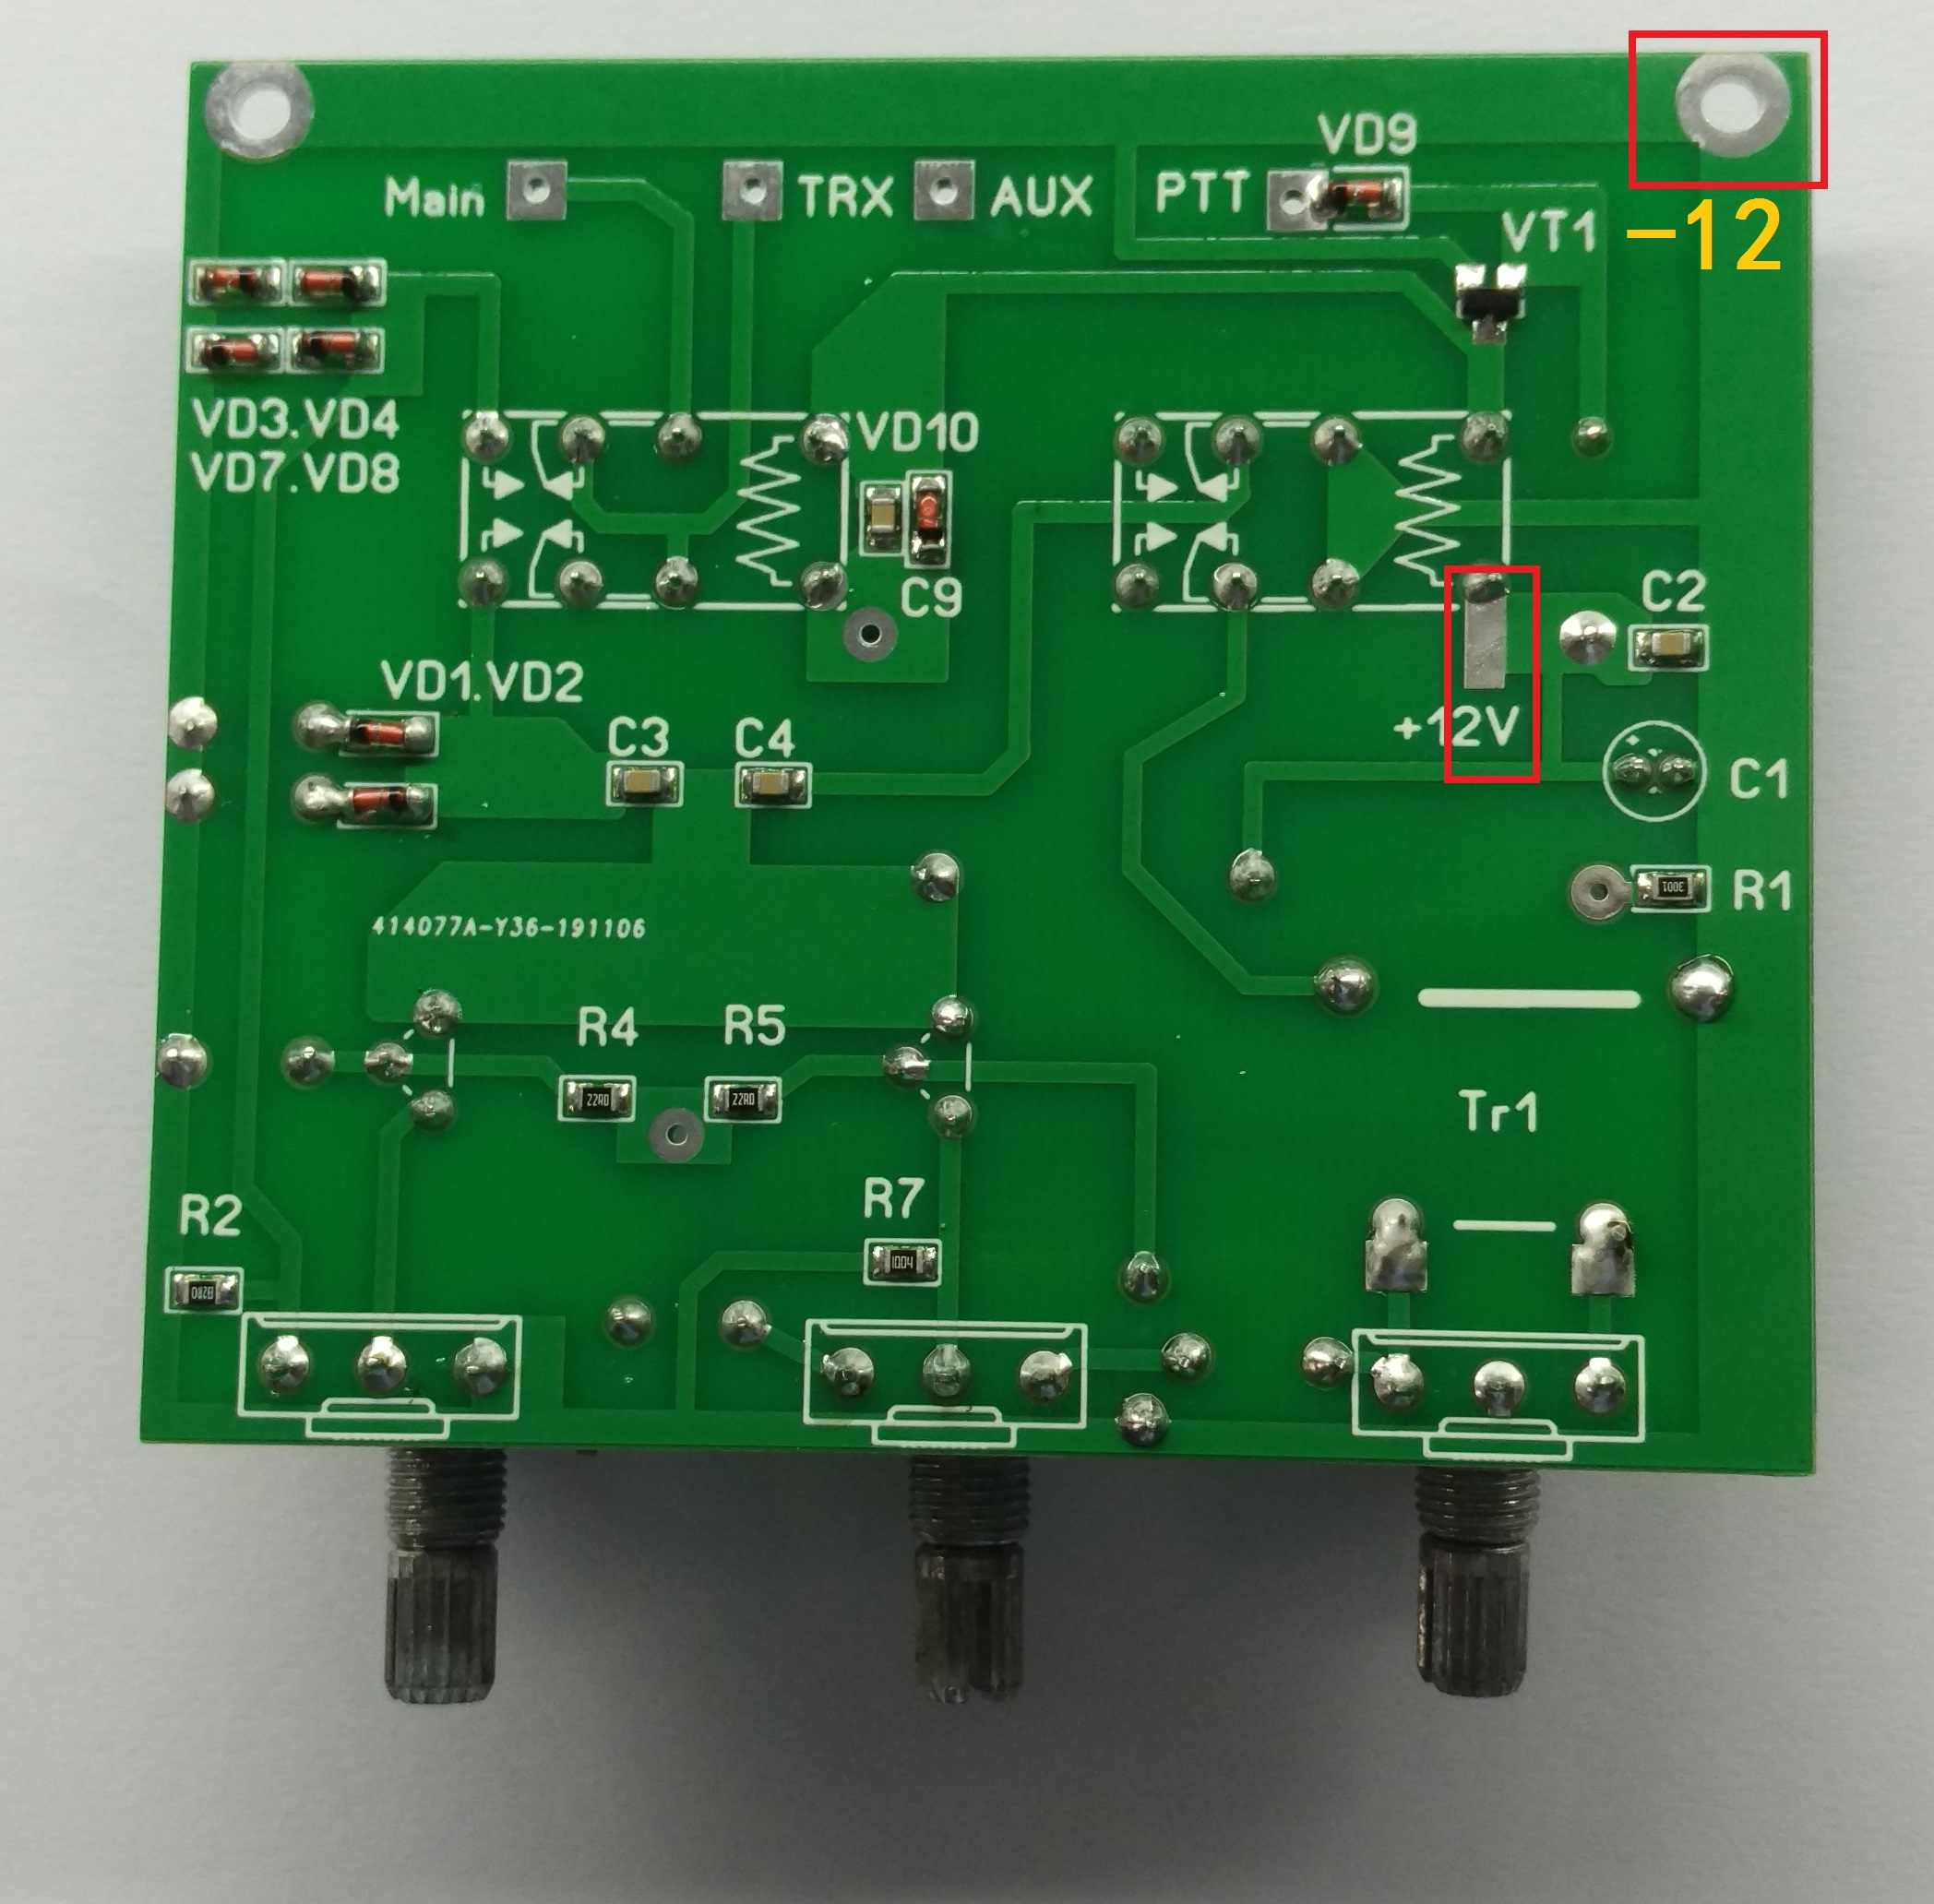 QRM Eliminator X-Phase QRM Canceller 1-30 MHz HF Bands Amplifier QRM Canceller Amplifier Board BlackGood Helper for Industry